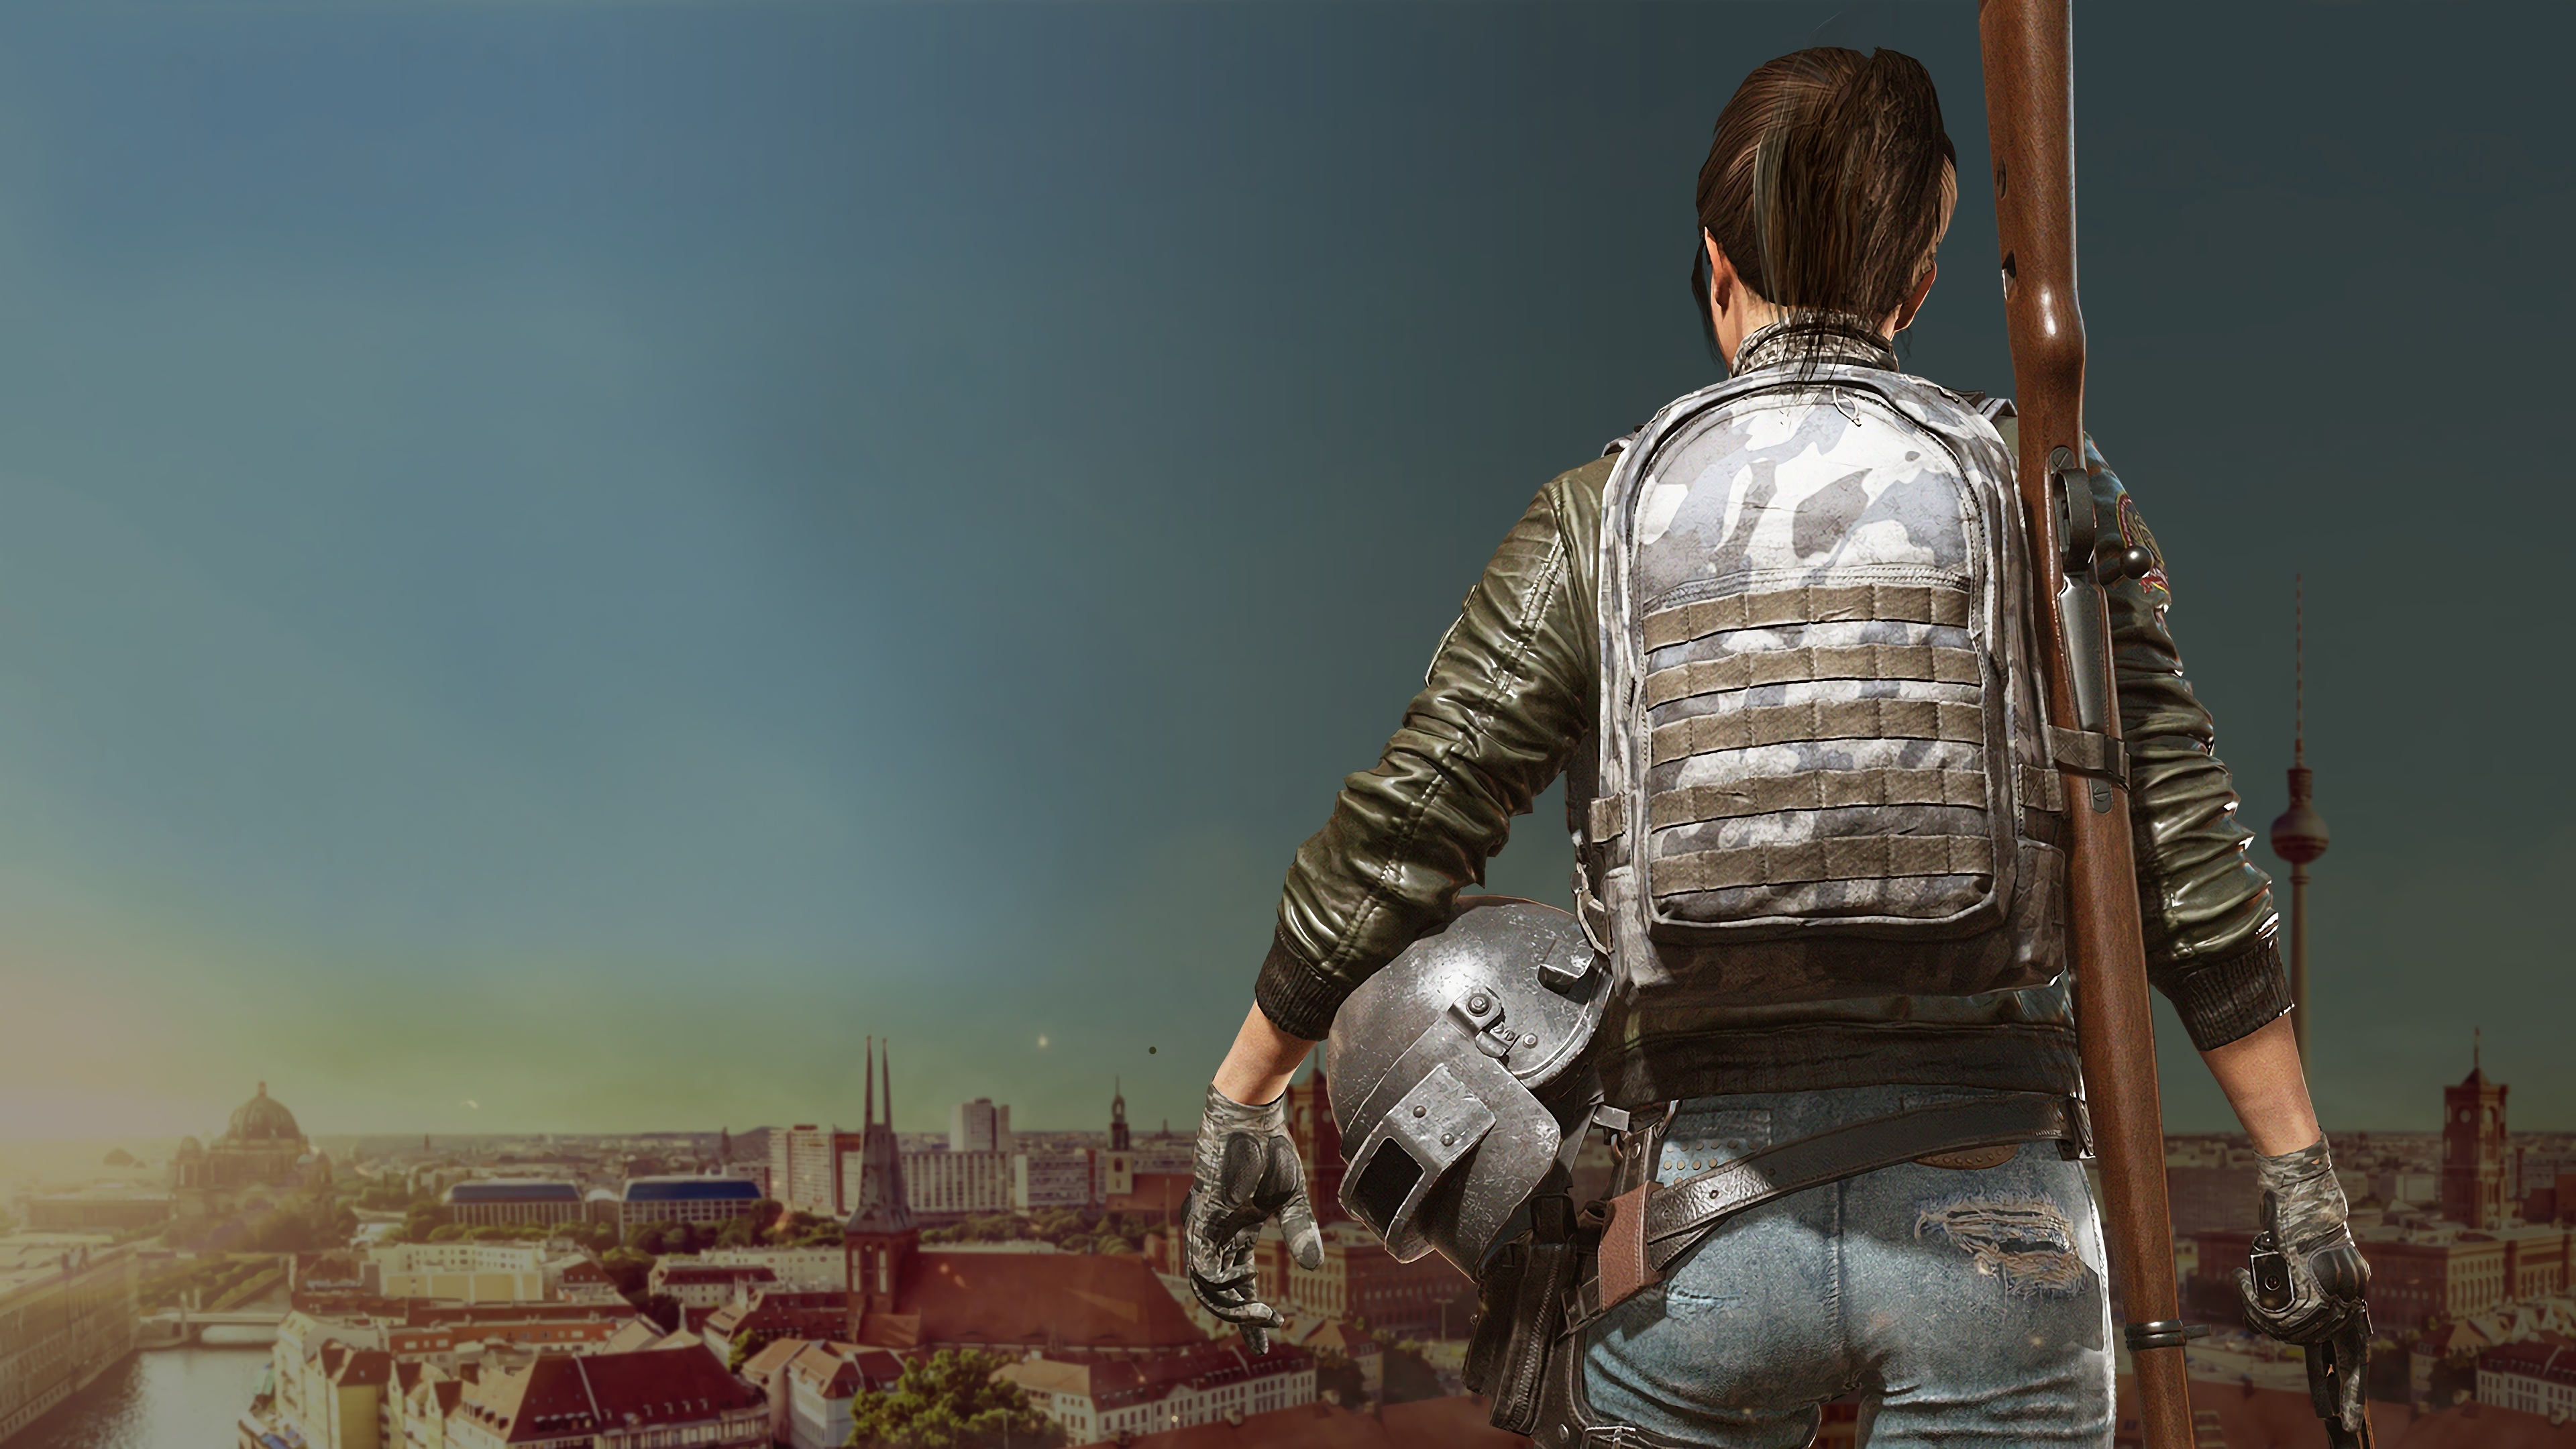 Pubg Lite Wallpaper Hd: Game Girl Pubg 4k, HD Games, 4k Wallpapers, Images